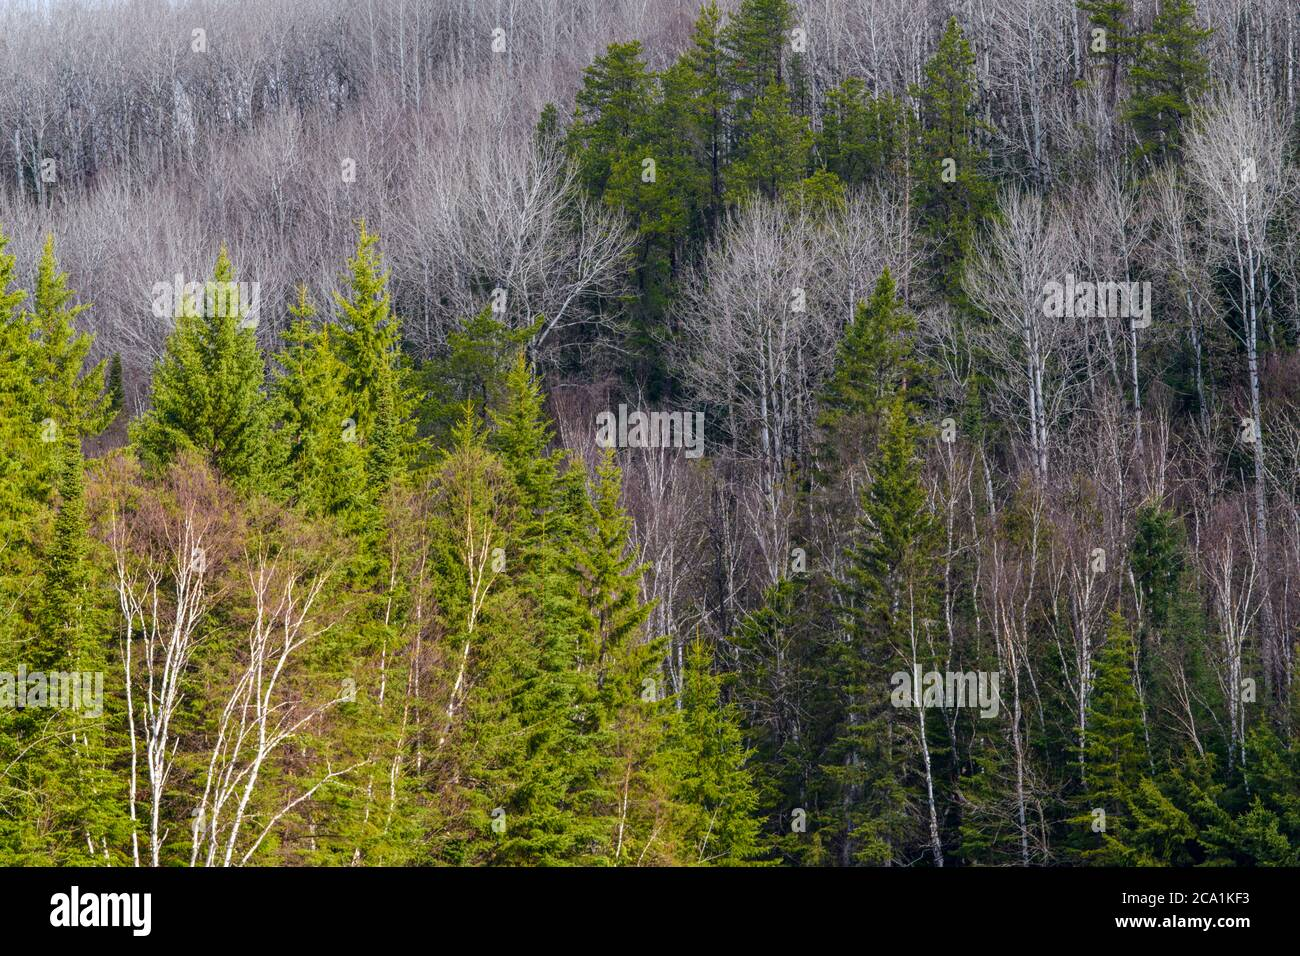 It is the result of original ethnobotanical fieldwork in 29 communities across the boreal forest region of manitoba, saskatchewan, and alberta. Boreal Forest In Early Spring Timmins Ontario Canada Stock Photo Alamy